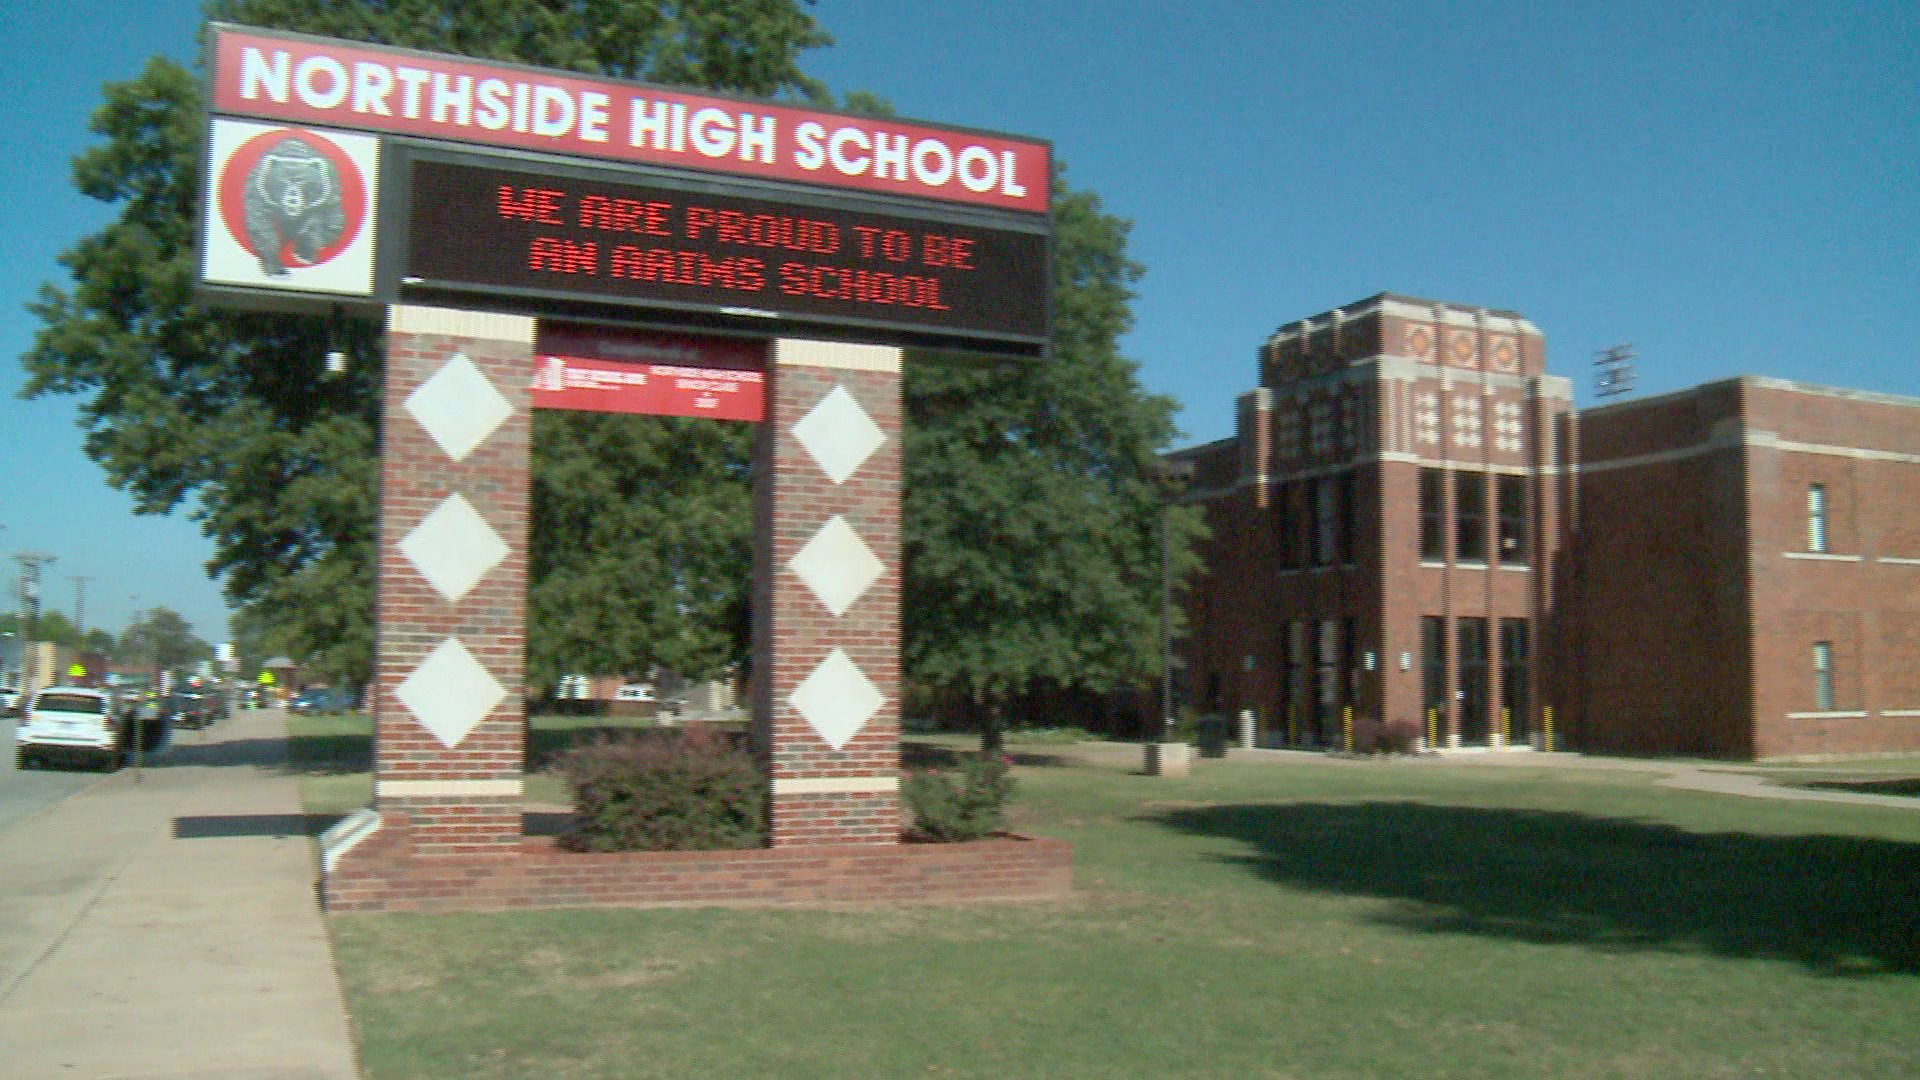 Northside High School